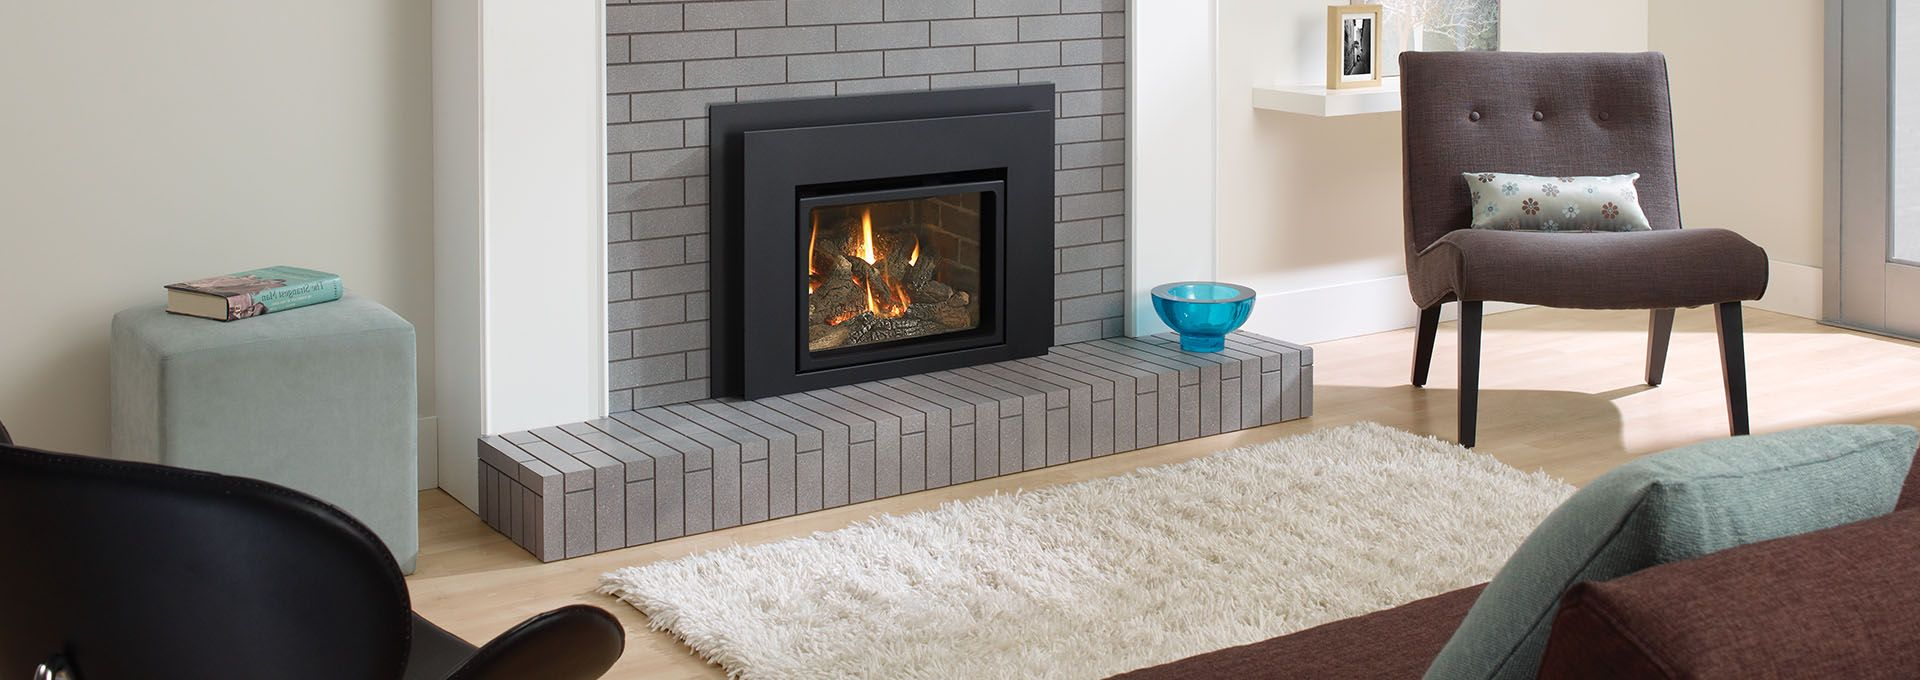 liberty collection fireplace by regency available through dda